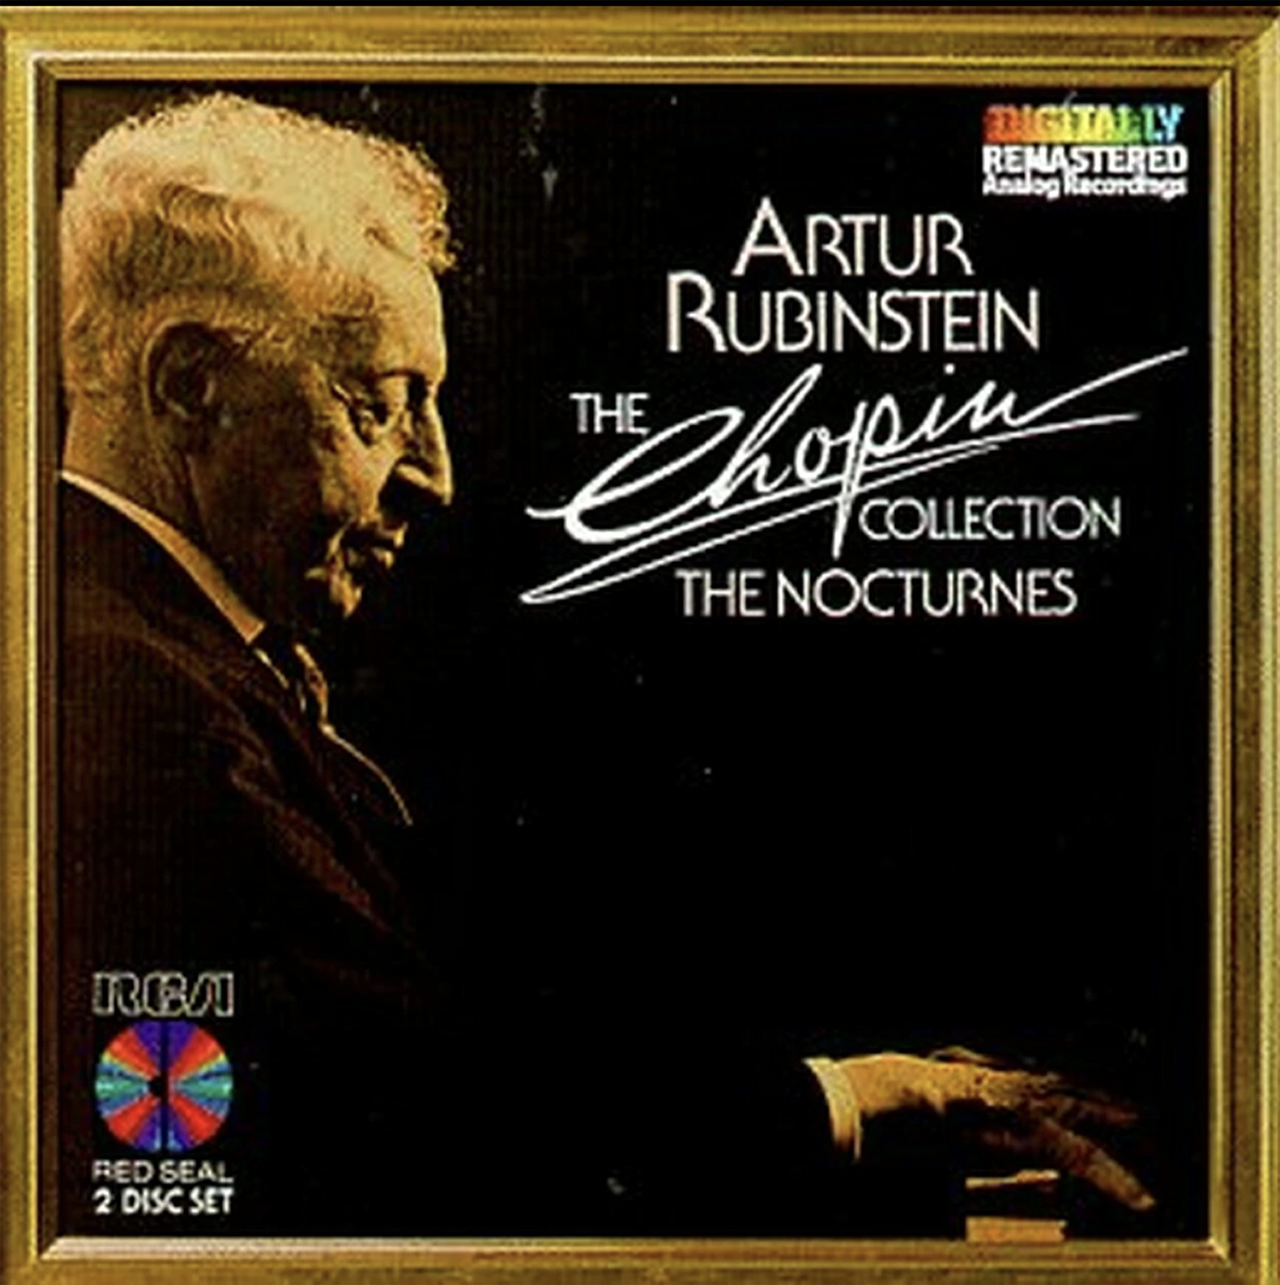 cover of Arthur Rubenstein's The Chopin Collection The Noctures